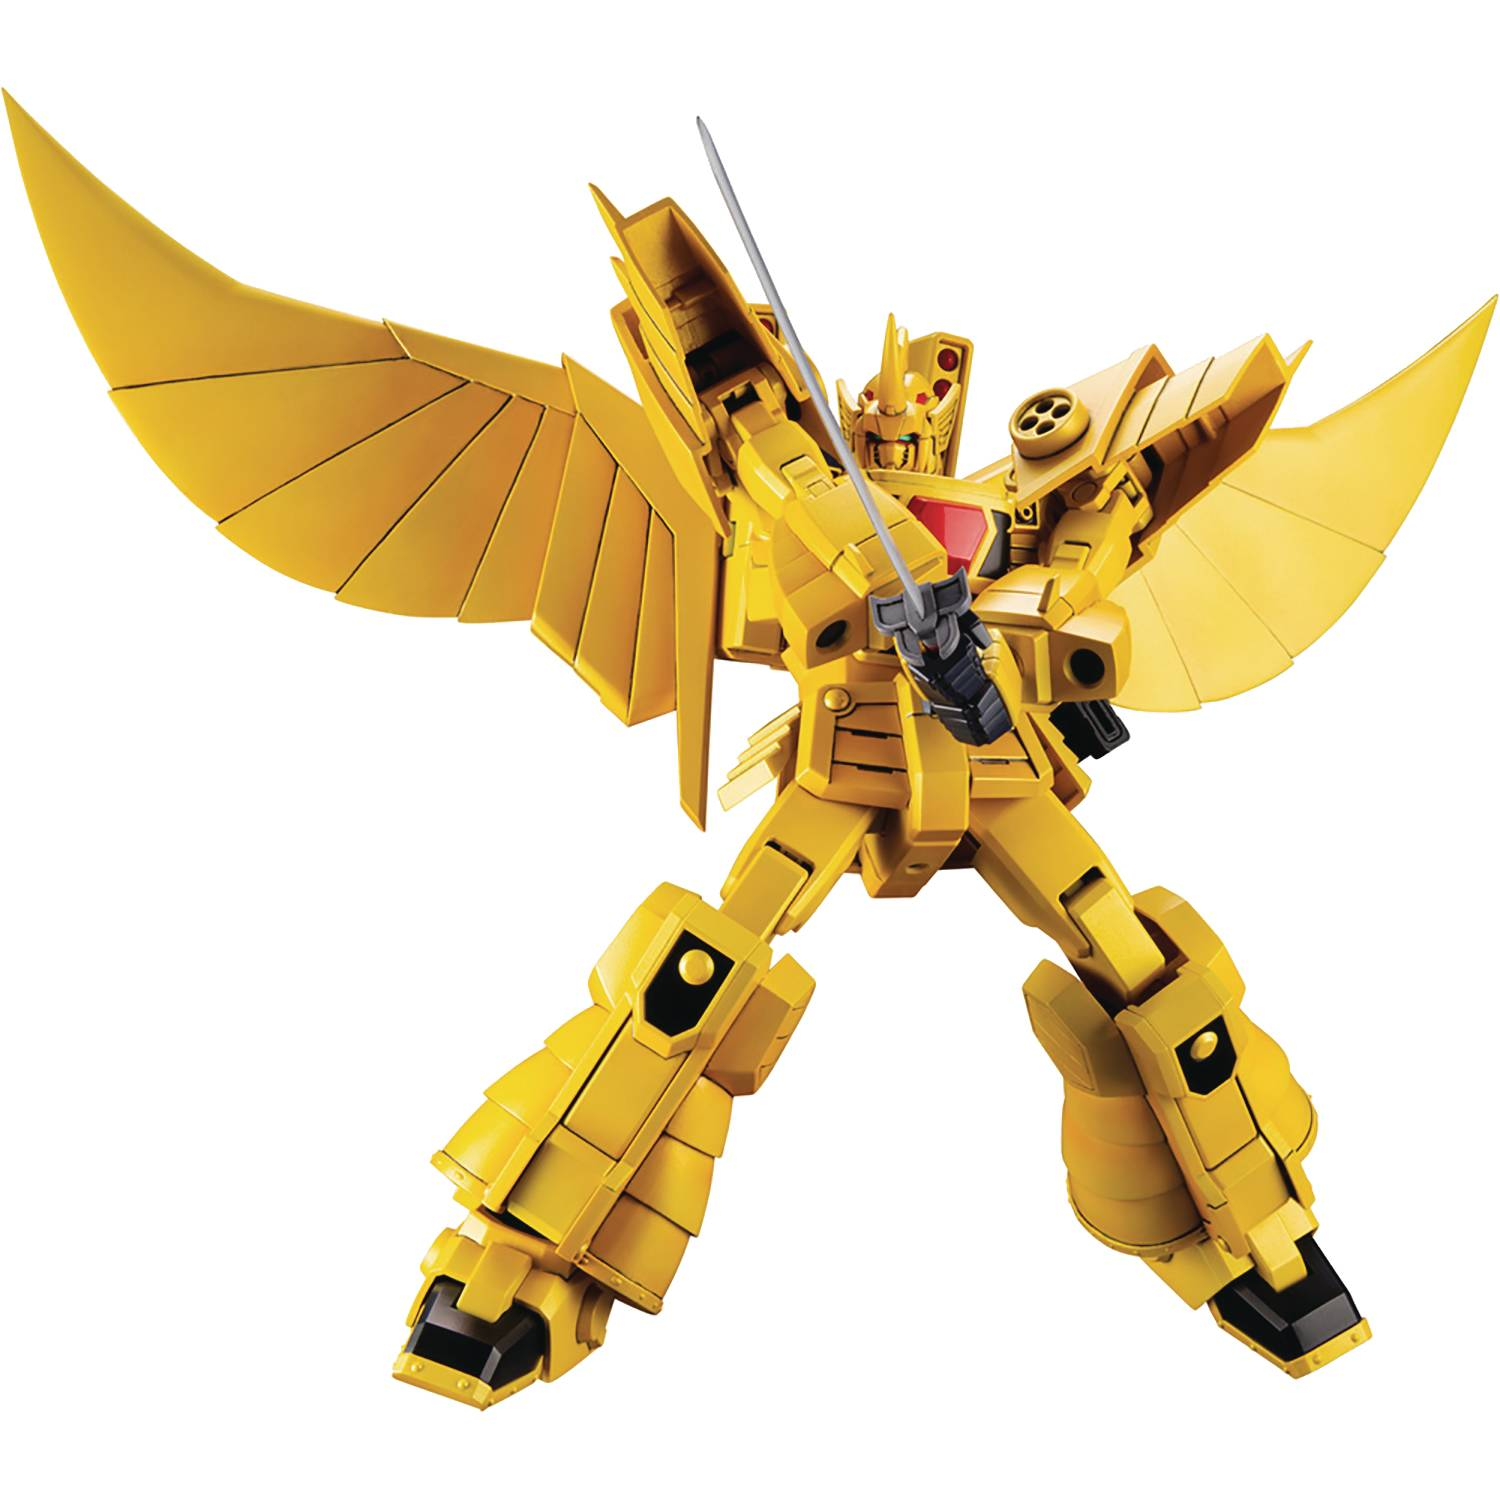 THE BRAVE OF GOLD GOLDRAN SKY GOLDRAN PLASTIC MDL KIT